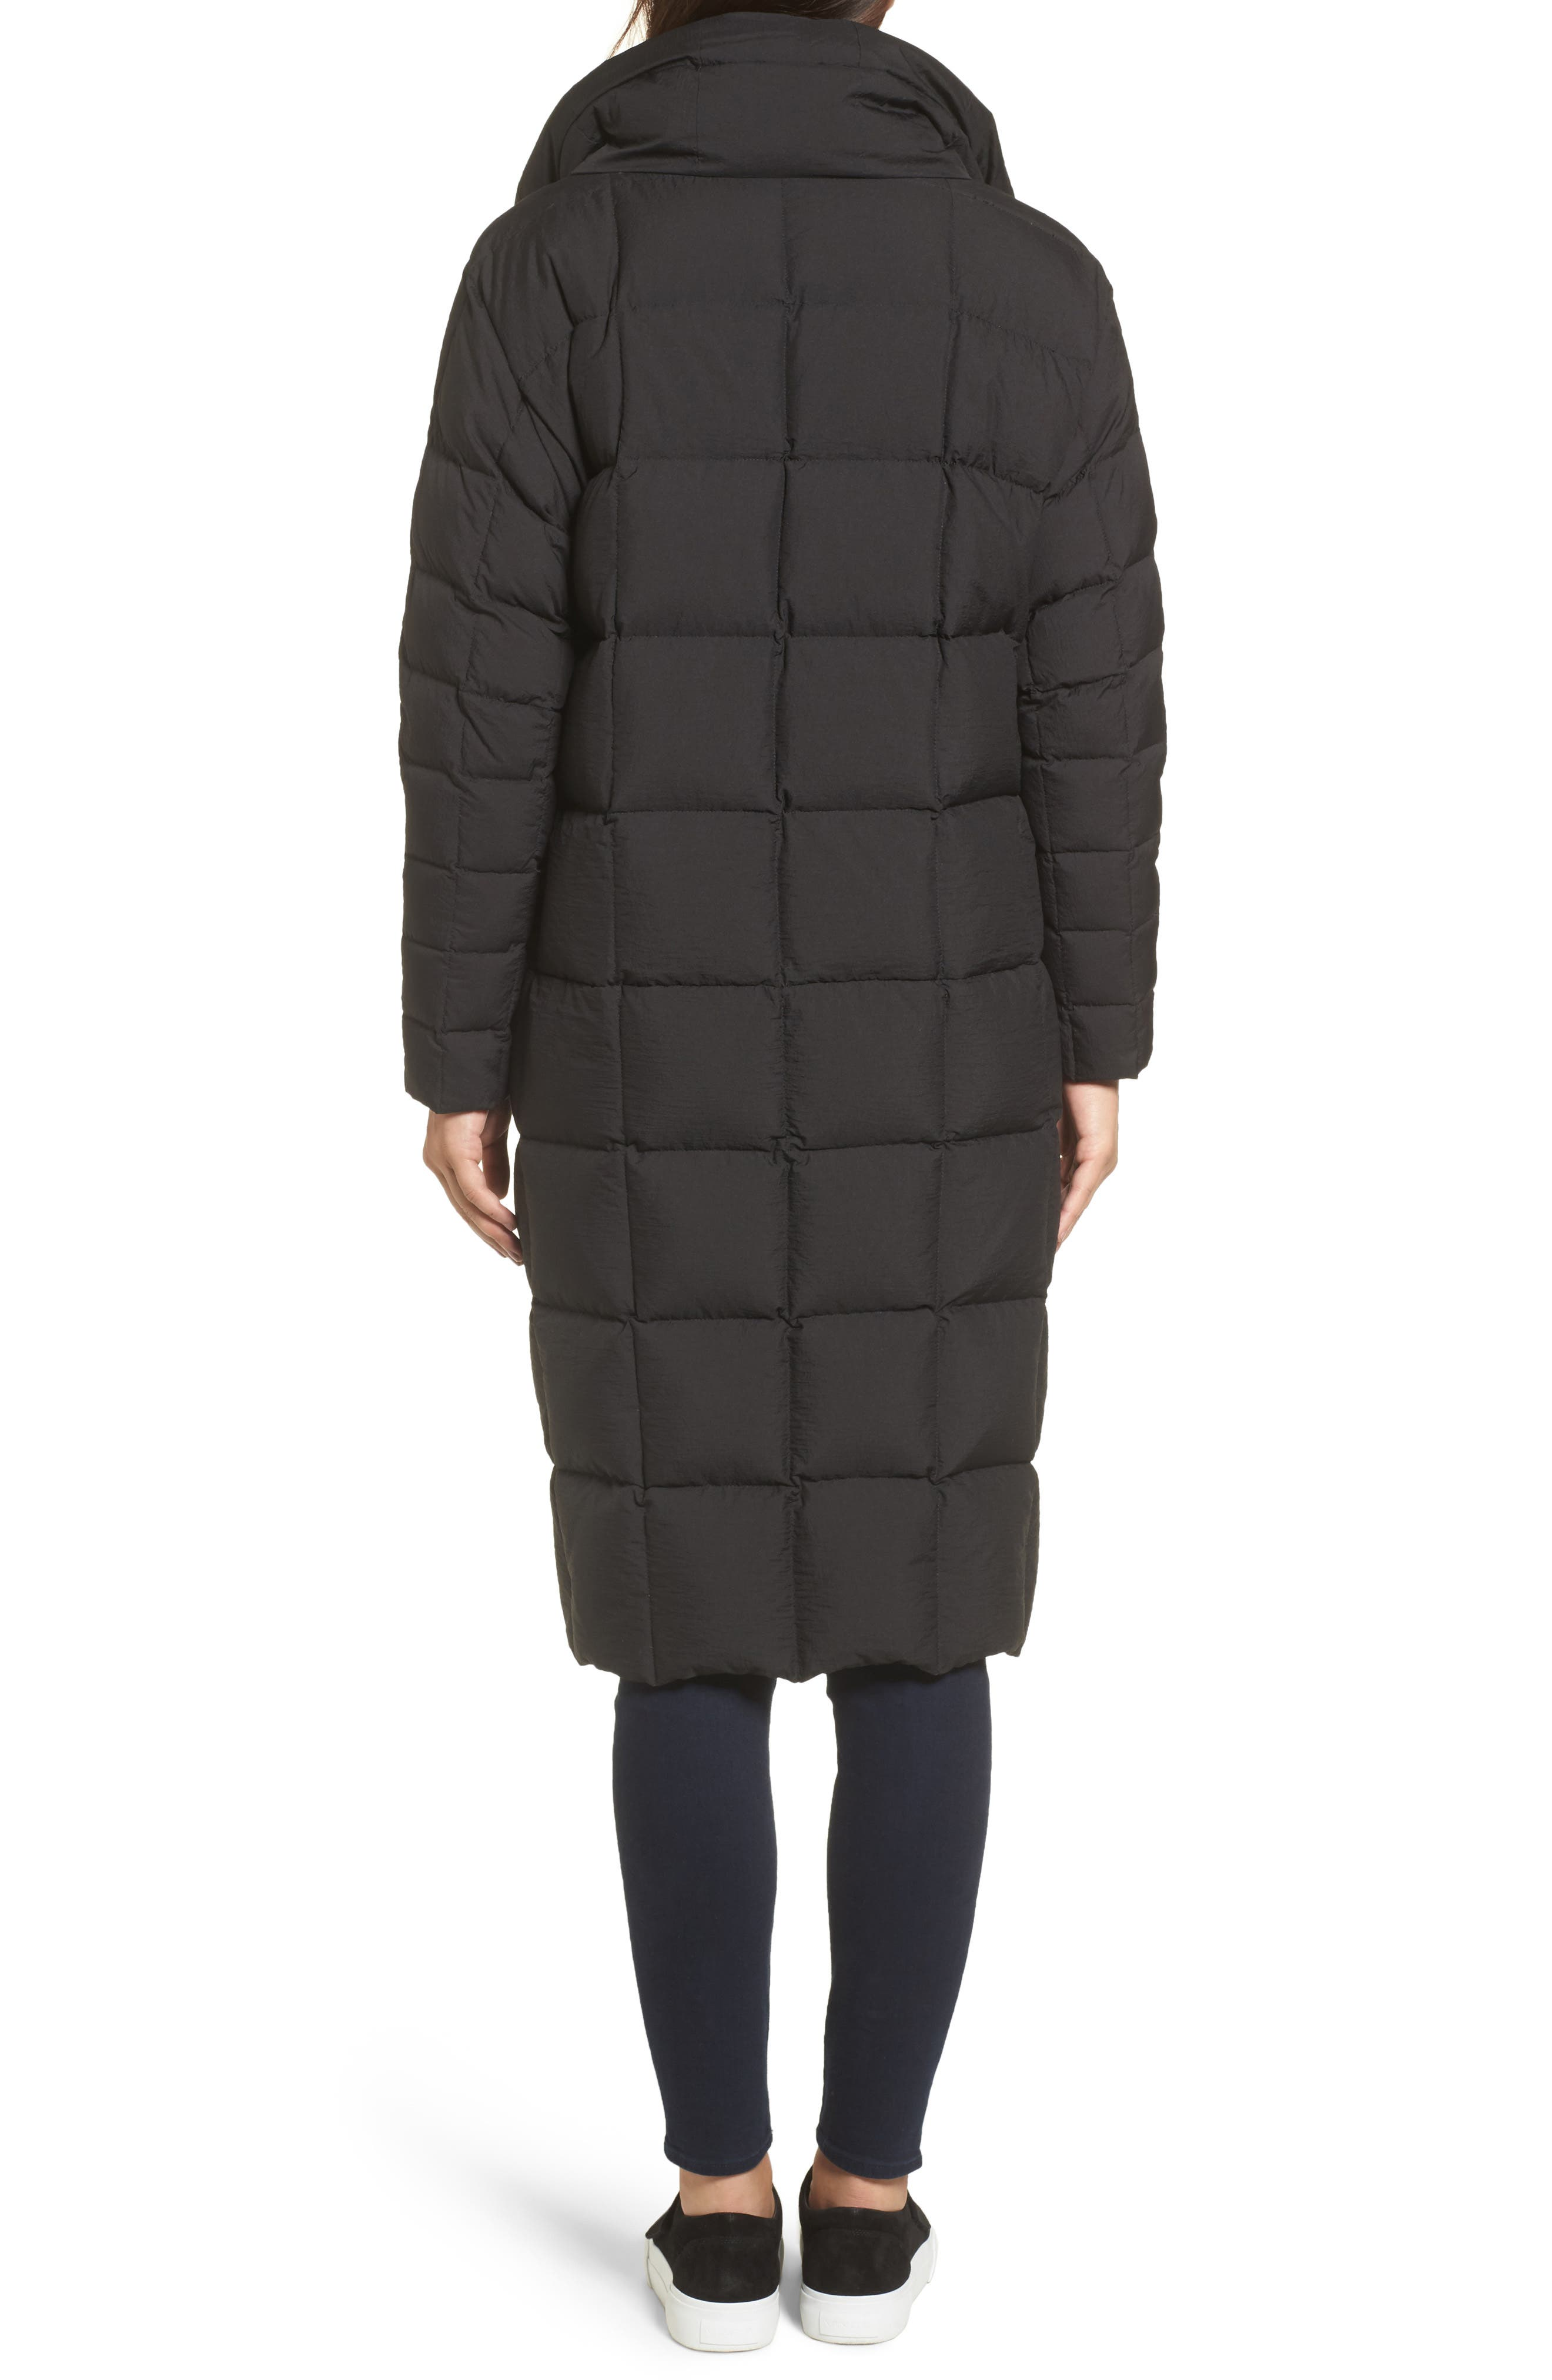 Carley Packable Long Coat,                             Alternate thumbnail 2, color,                             Black